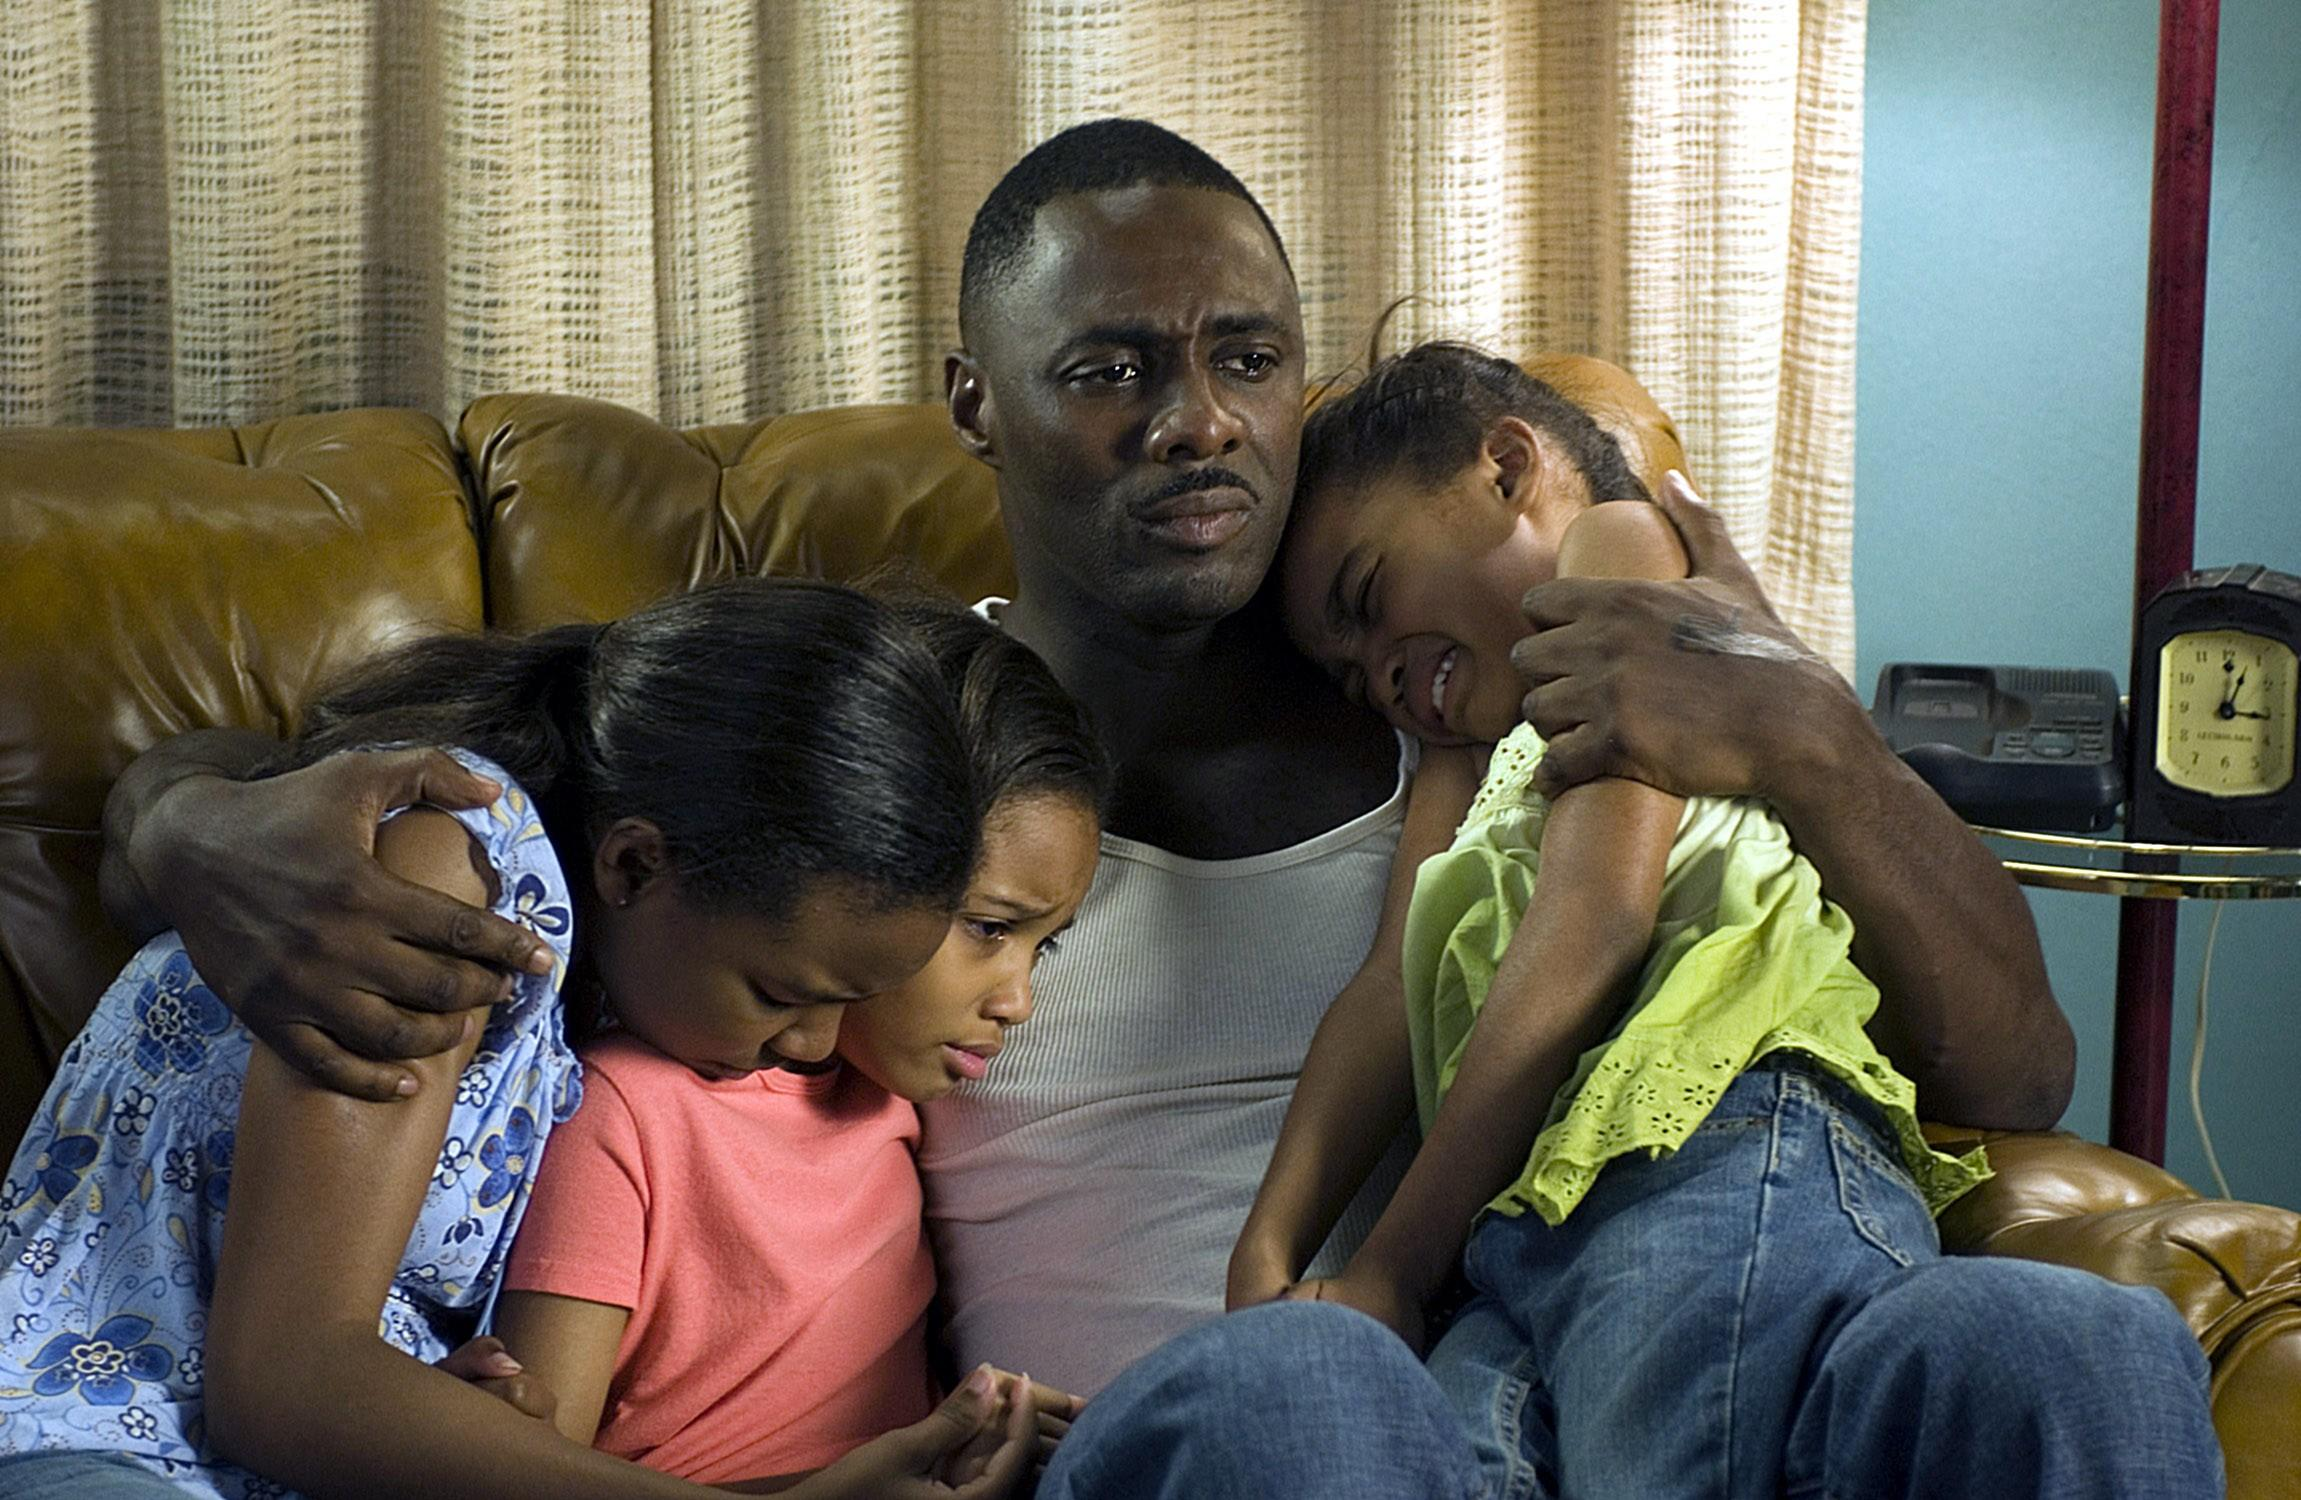 elba girls Idris elba, actor: beasts of no nation an only child, idrissa akuna elba was born and raised in london, england his father, winston, is from sierra leone and worked at ford dagenham his.